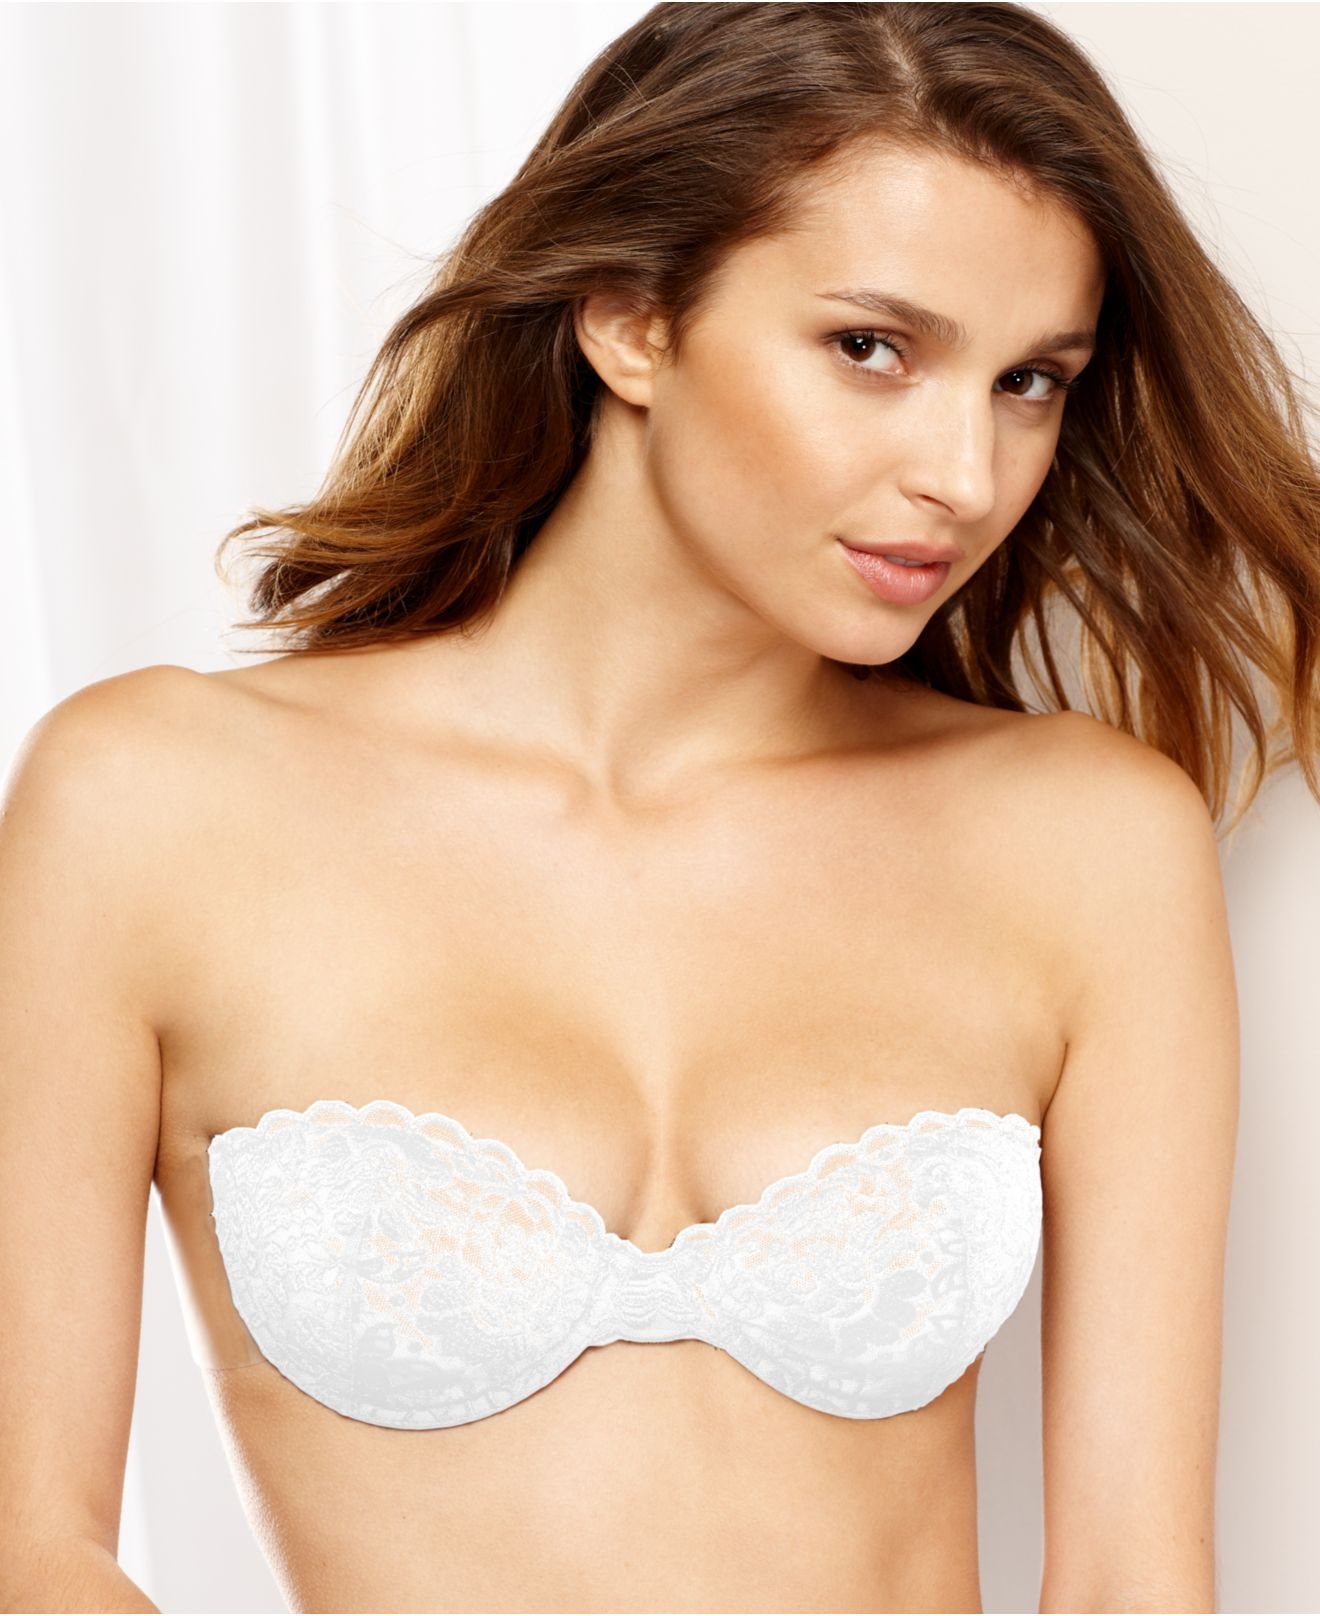 ccd32d96031 Fashion Forms Lace Backless Strapless Bra Mc638 in White - Lyst